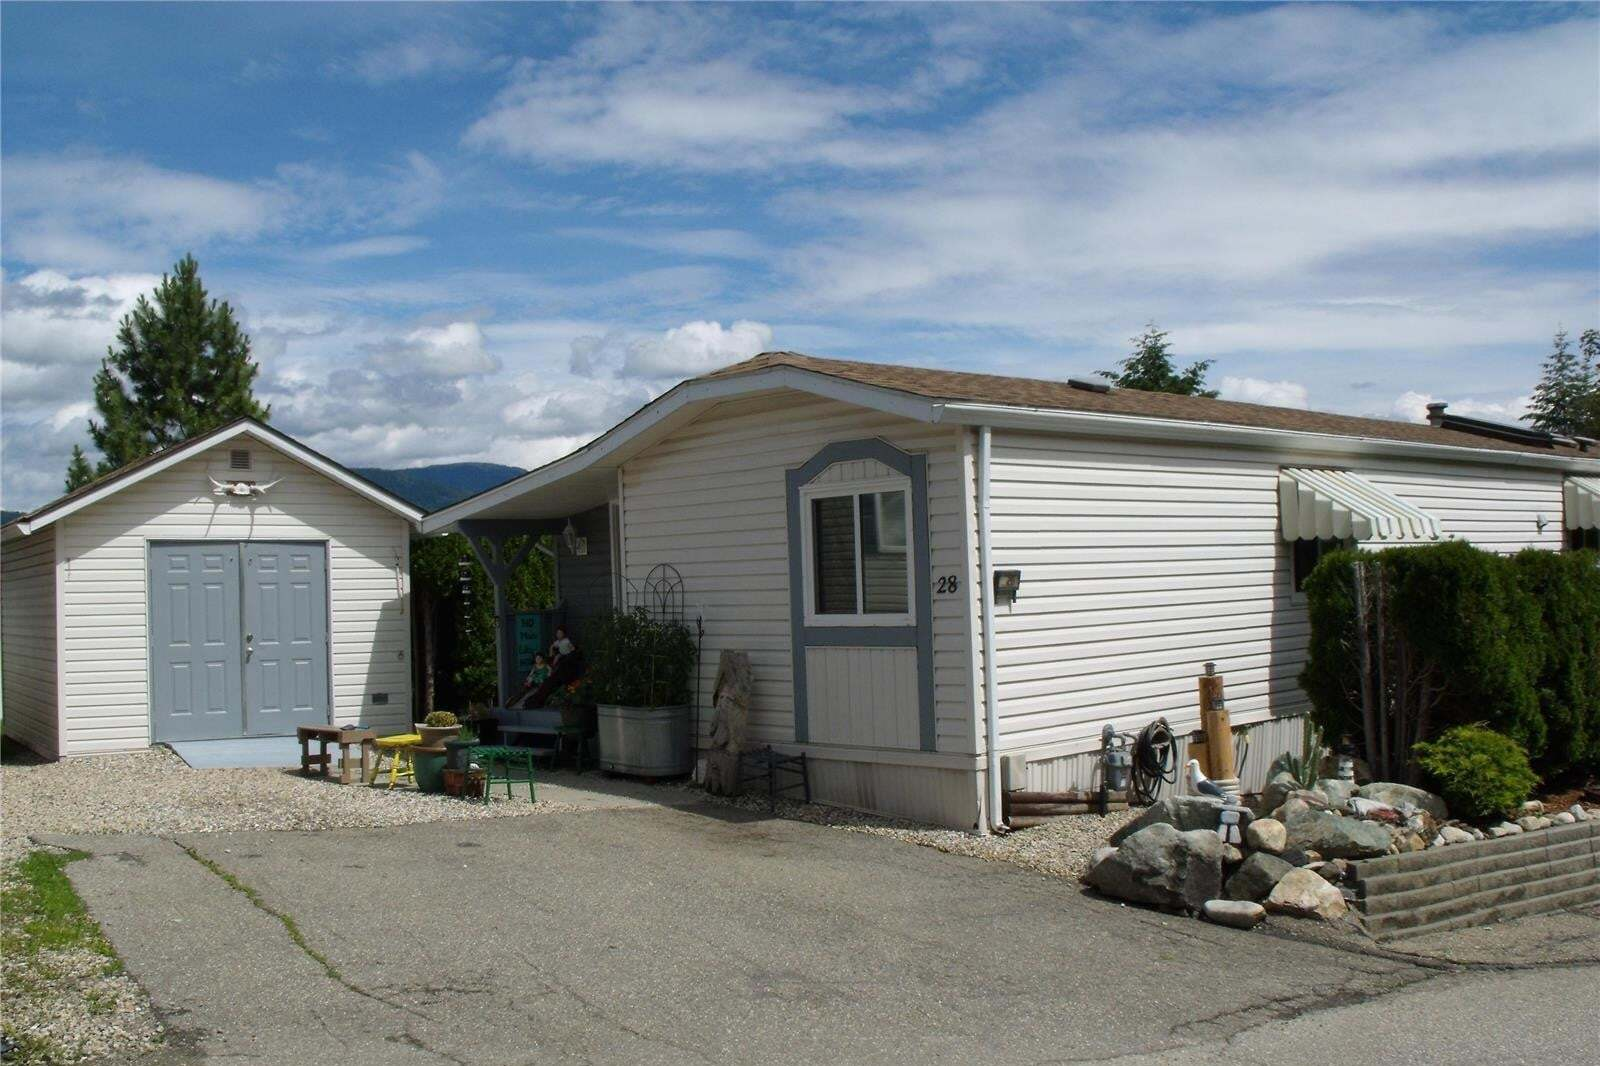 Residential property for sale at 1420 Trans Canada Hy Sorrento British Columbia - MLS: 10207910